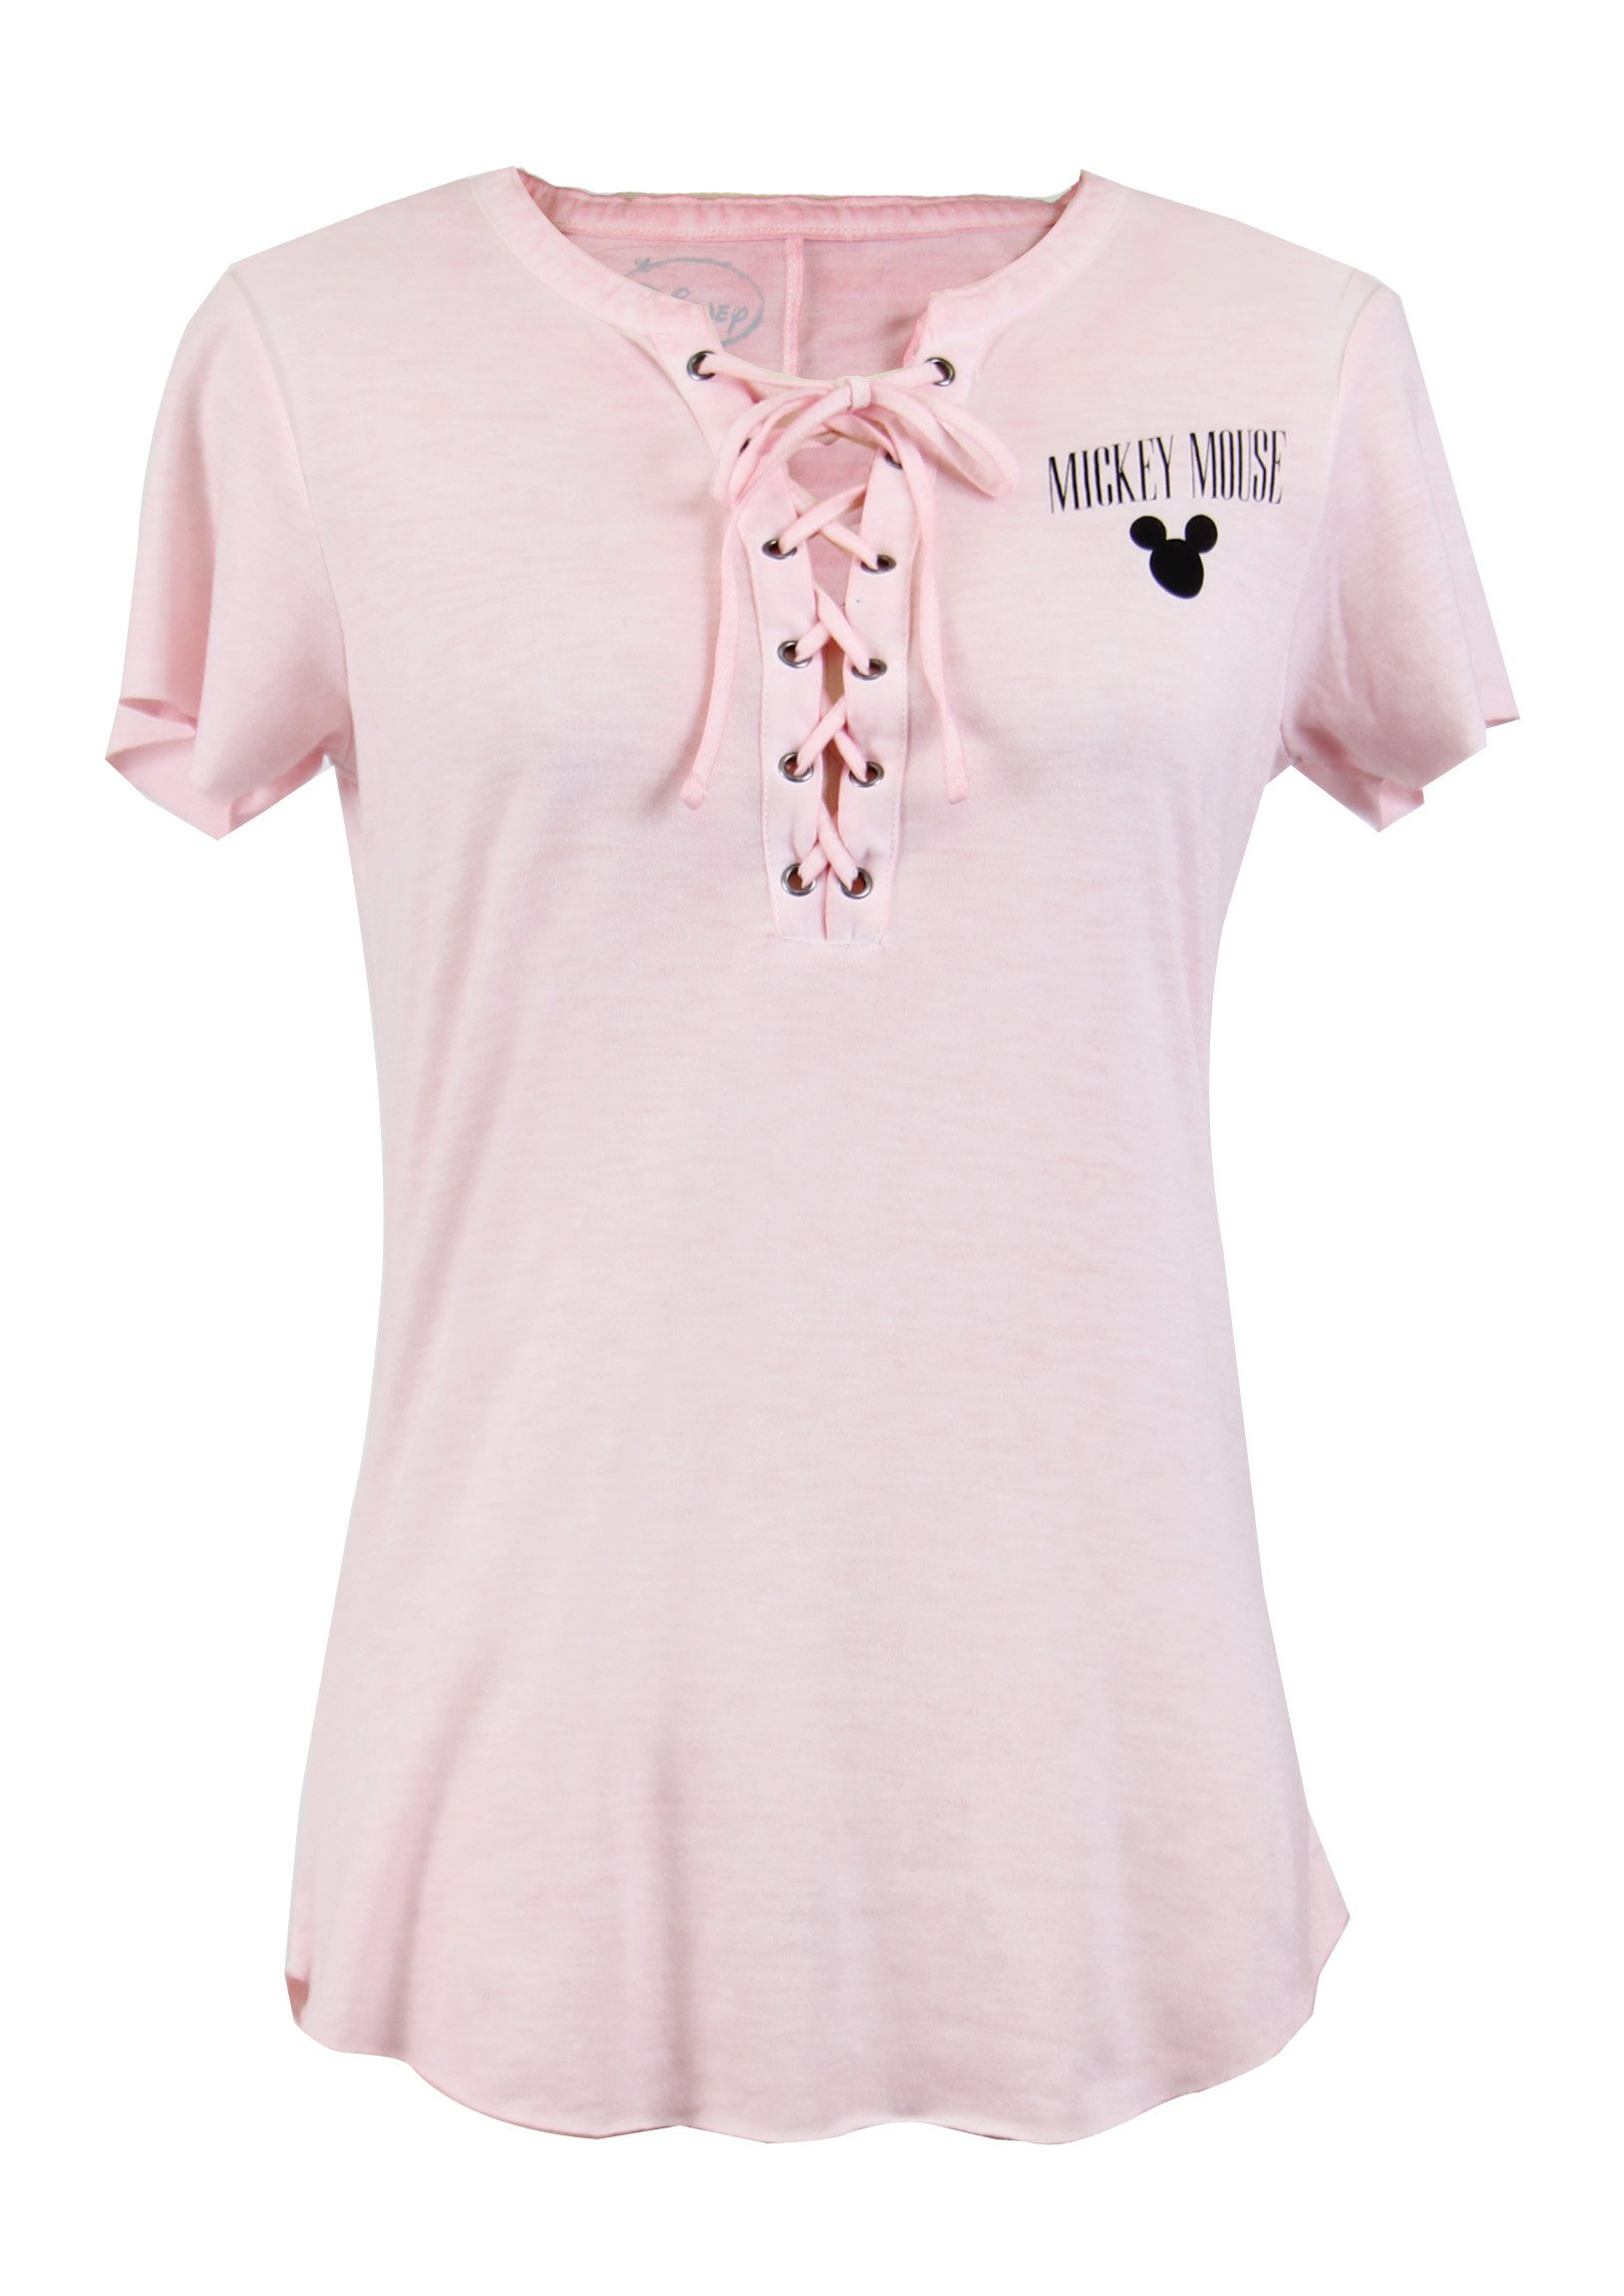 Disney Mickey Mouse Pink Graphic Tie Front Short Sleeve T-Shirt (Medium) by CITY DISNEY